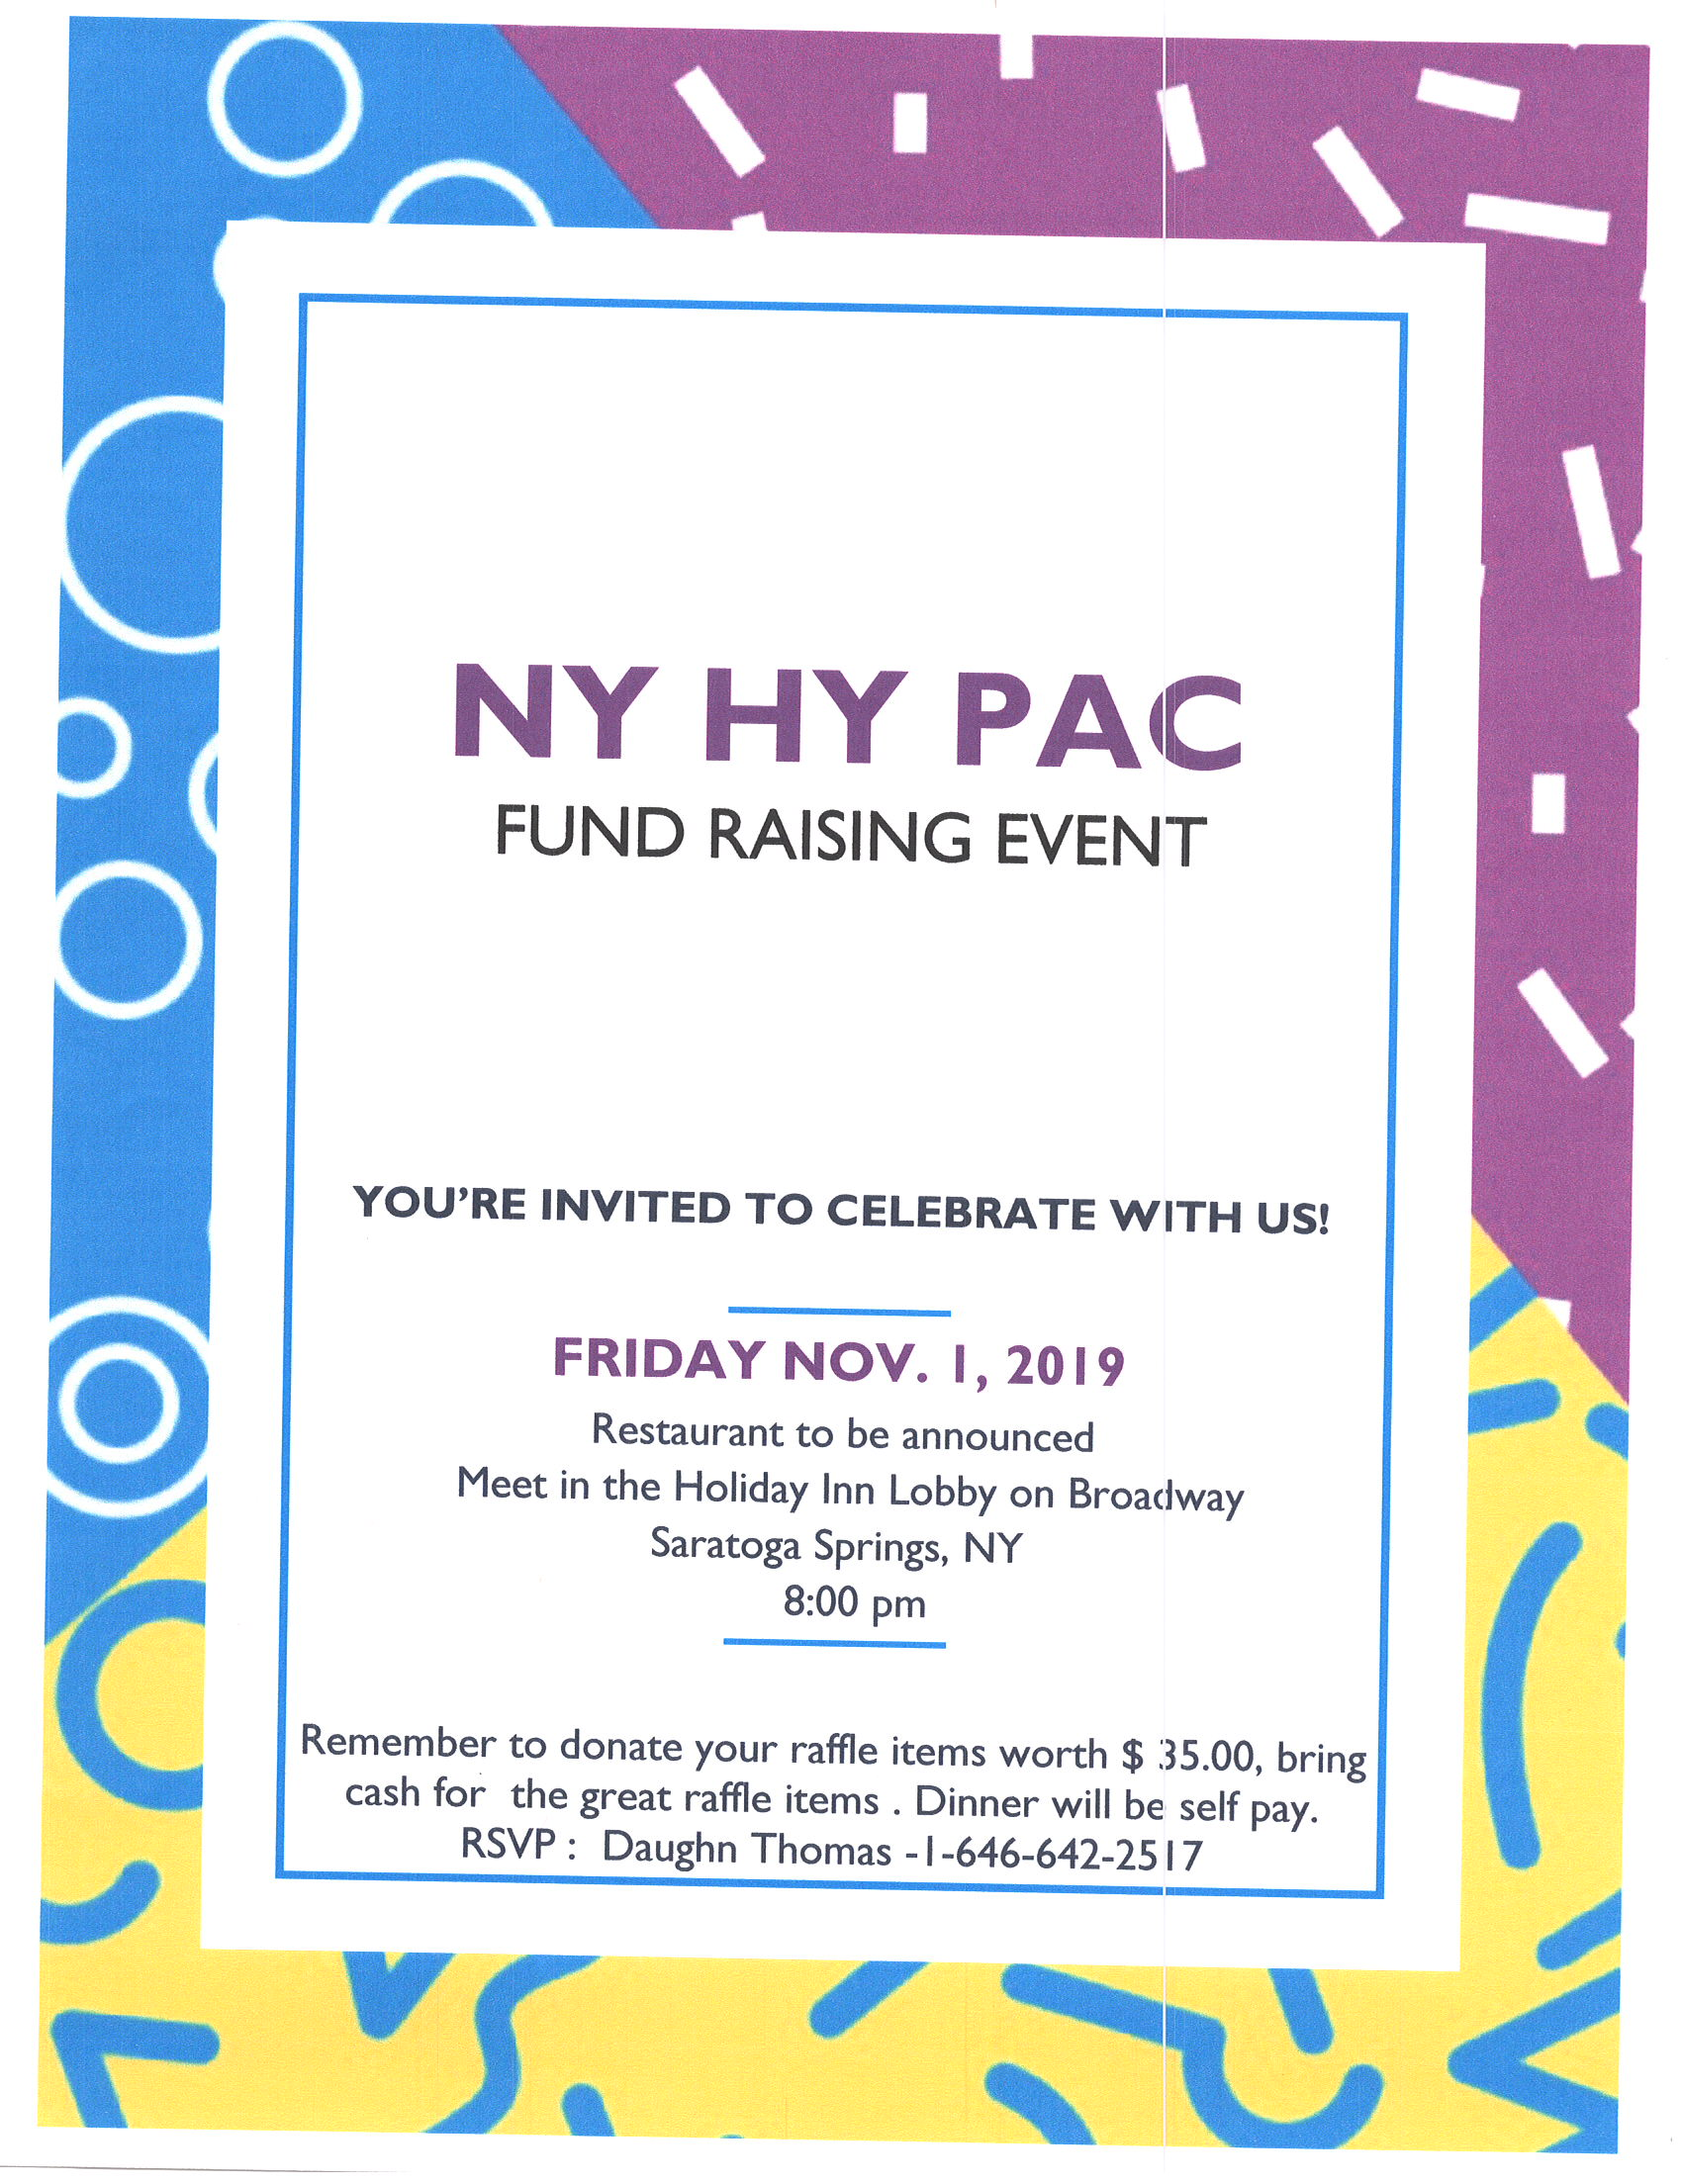 HYPAC Event Nov. 1, 2019